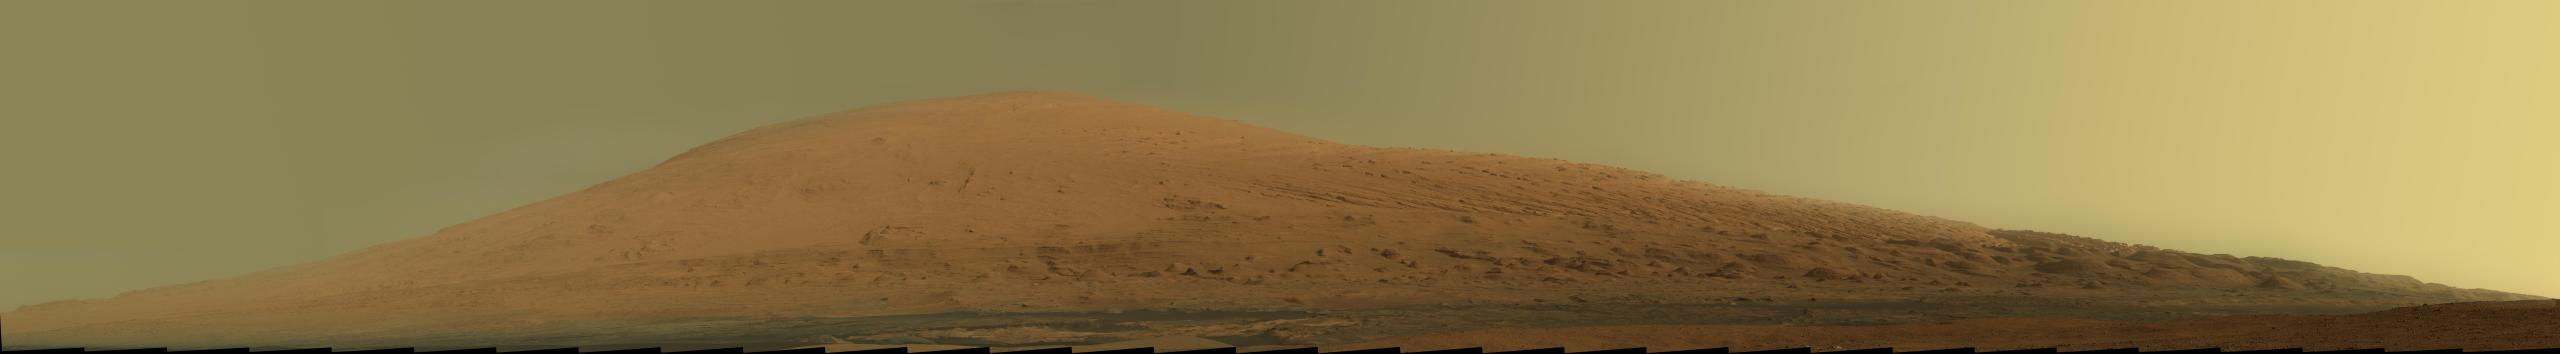 "Mount Sharp Panorama This mosaic of images from the Mast Camera (Mastcam) on NASA's Mars rover Curiosity shows Mount Sharp in raw color  as recorded by the camera. Raw color shows the scene's colors as they would look in a typical smart-phone camera photo, before any adjustment. [White-balancing version can be found here.] Mount Sharp, also called Aeolis Mons, is a layered mound in the center of Mars' Gale Crater, rising more than 3 miles (5 kilometers) above the crater floor, where Curiosity has been working since the rover's landing in August 2012. Lower slopes of Mount Sharp are the major destination for the mission, though the rover will first spend many more weeks around a location called ""Yellowknife Bay,"" where it has found evidence of a past environment favorable for microbial life. This mosaic was assembled from dozens of images from the 100-millimeter-focal-length telephoto lens camera mounted on the right side of the Mastcam instrument. The component images were taken during the 45th Martian day, or sol, of Curiosity's mission on Mars (Sept. 20, 2012). The sky has been filled out by extrapolating color and brightness information from the portions of the sky that were captured in images of the terrain."